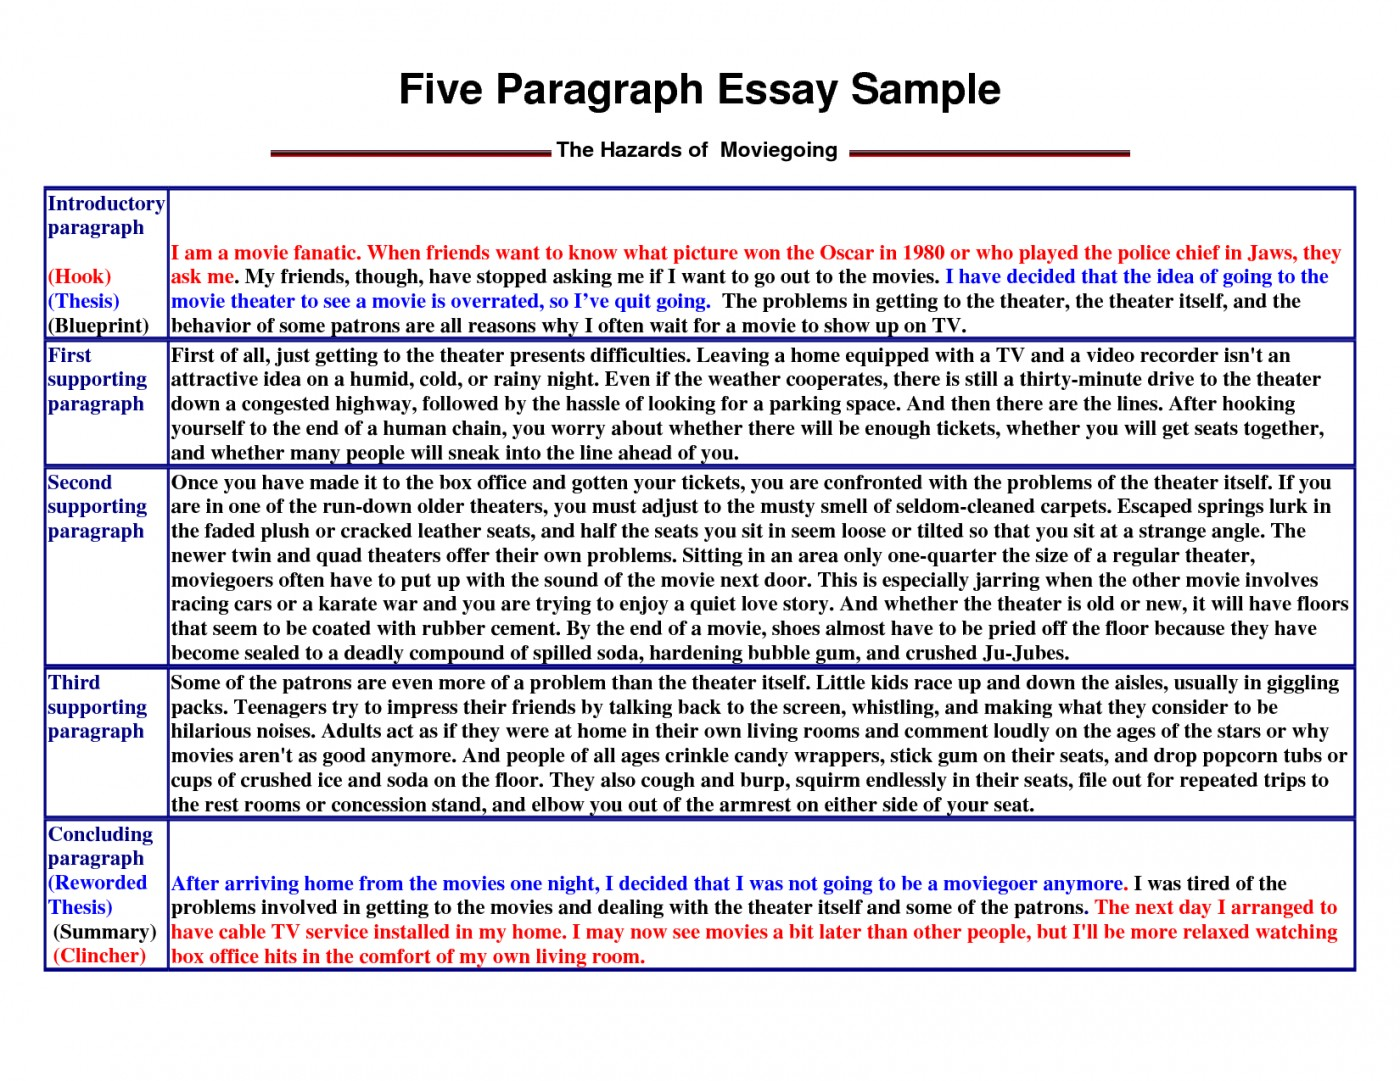 005 paragraph essay graphic organizer how to write about